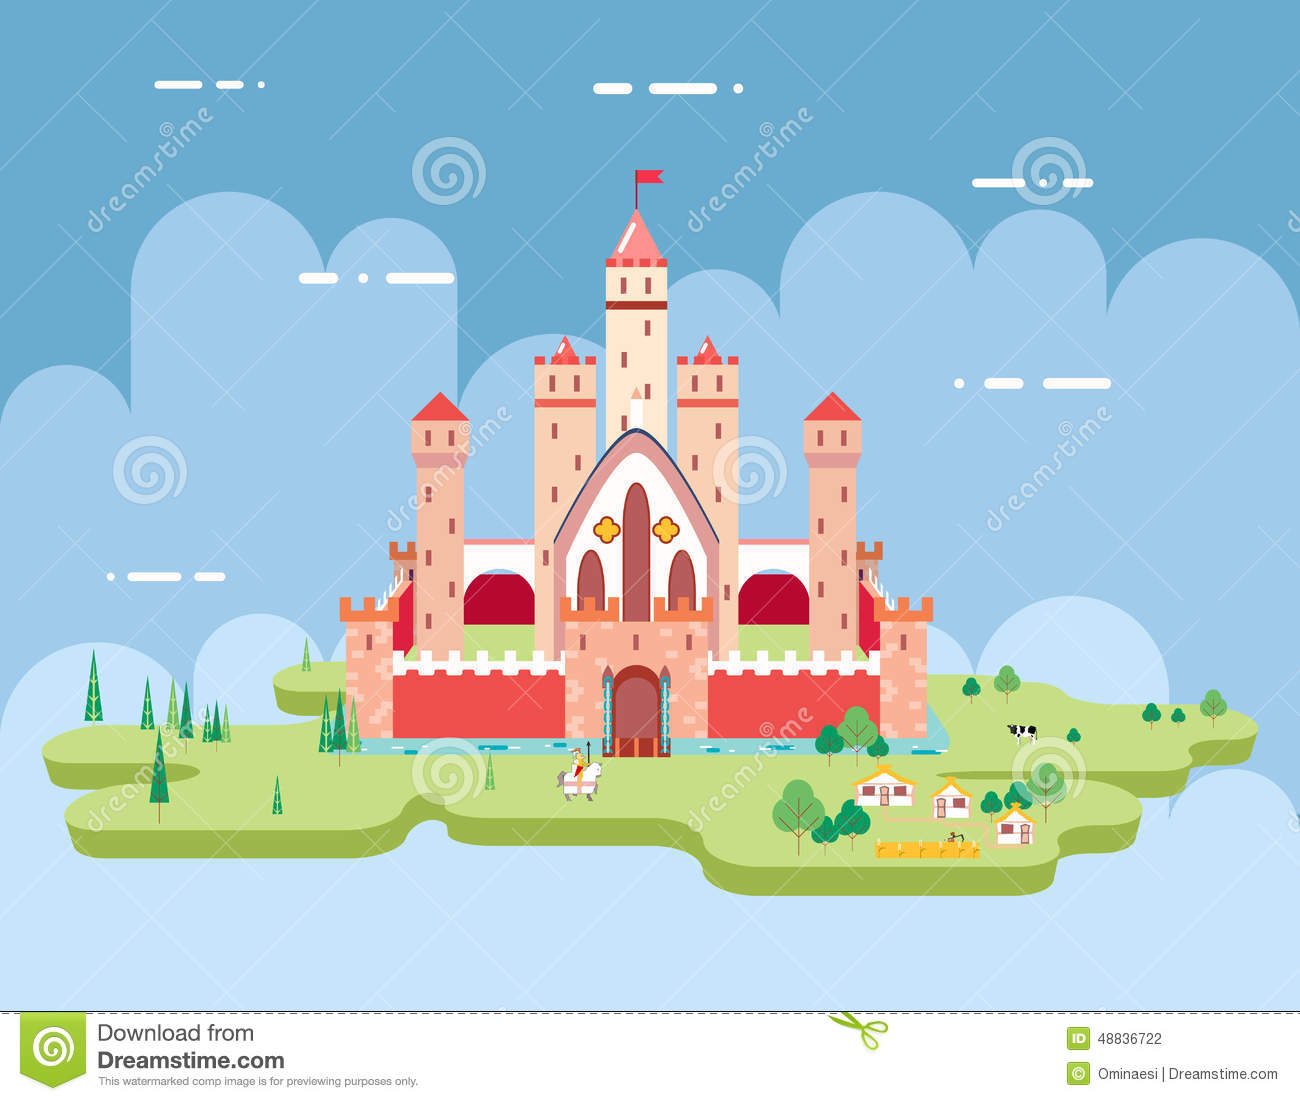 Flat design castle cartoon magic fairytale icon stock Design a castle online